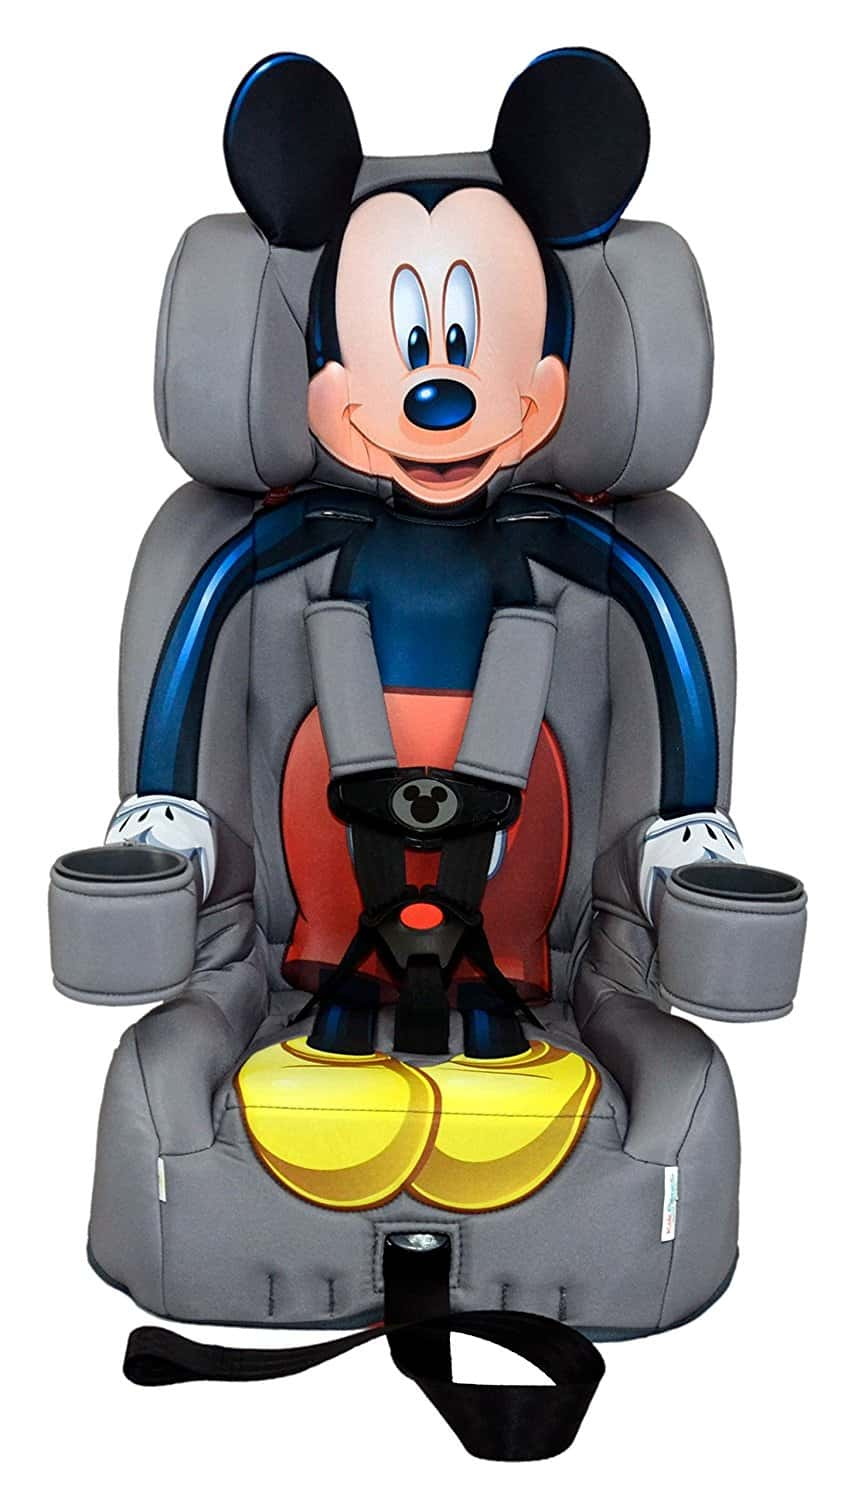 Booster Seat Review: KIDSEmbrace Character Toddler Seat